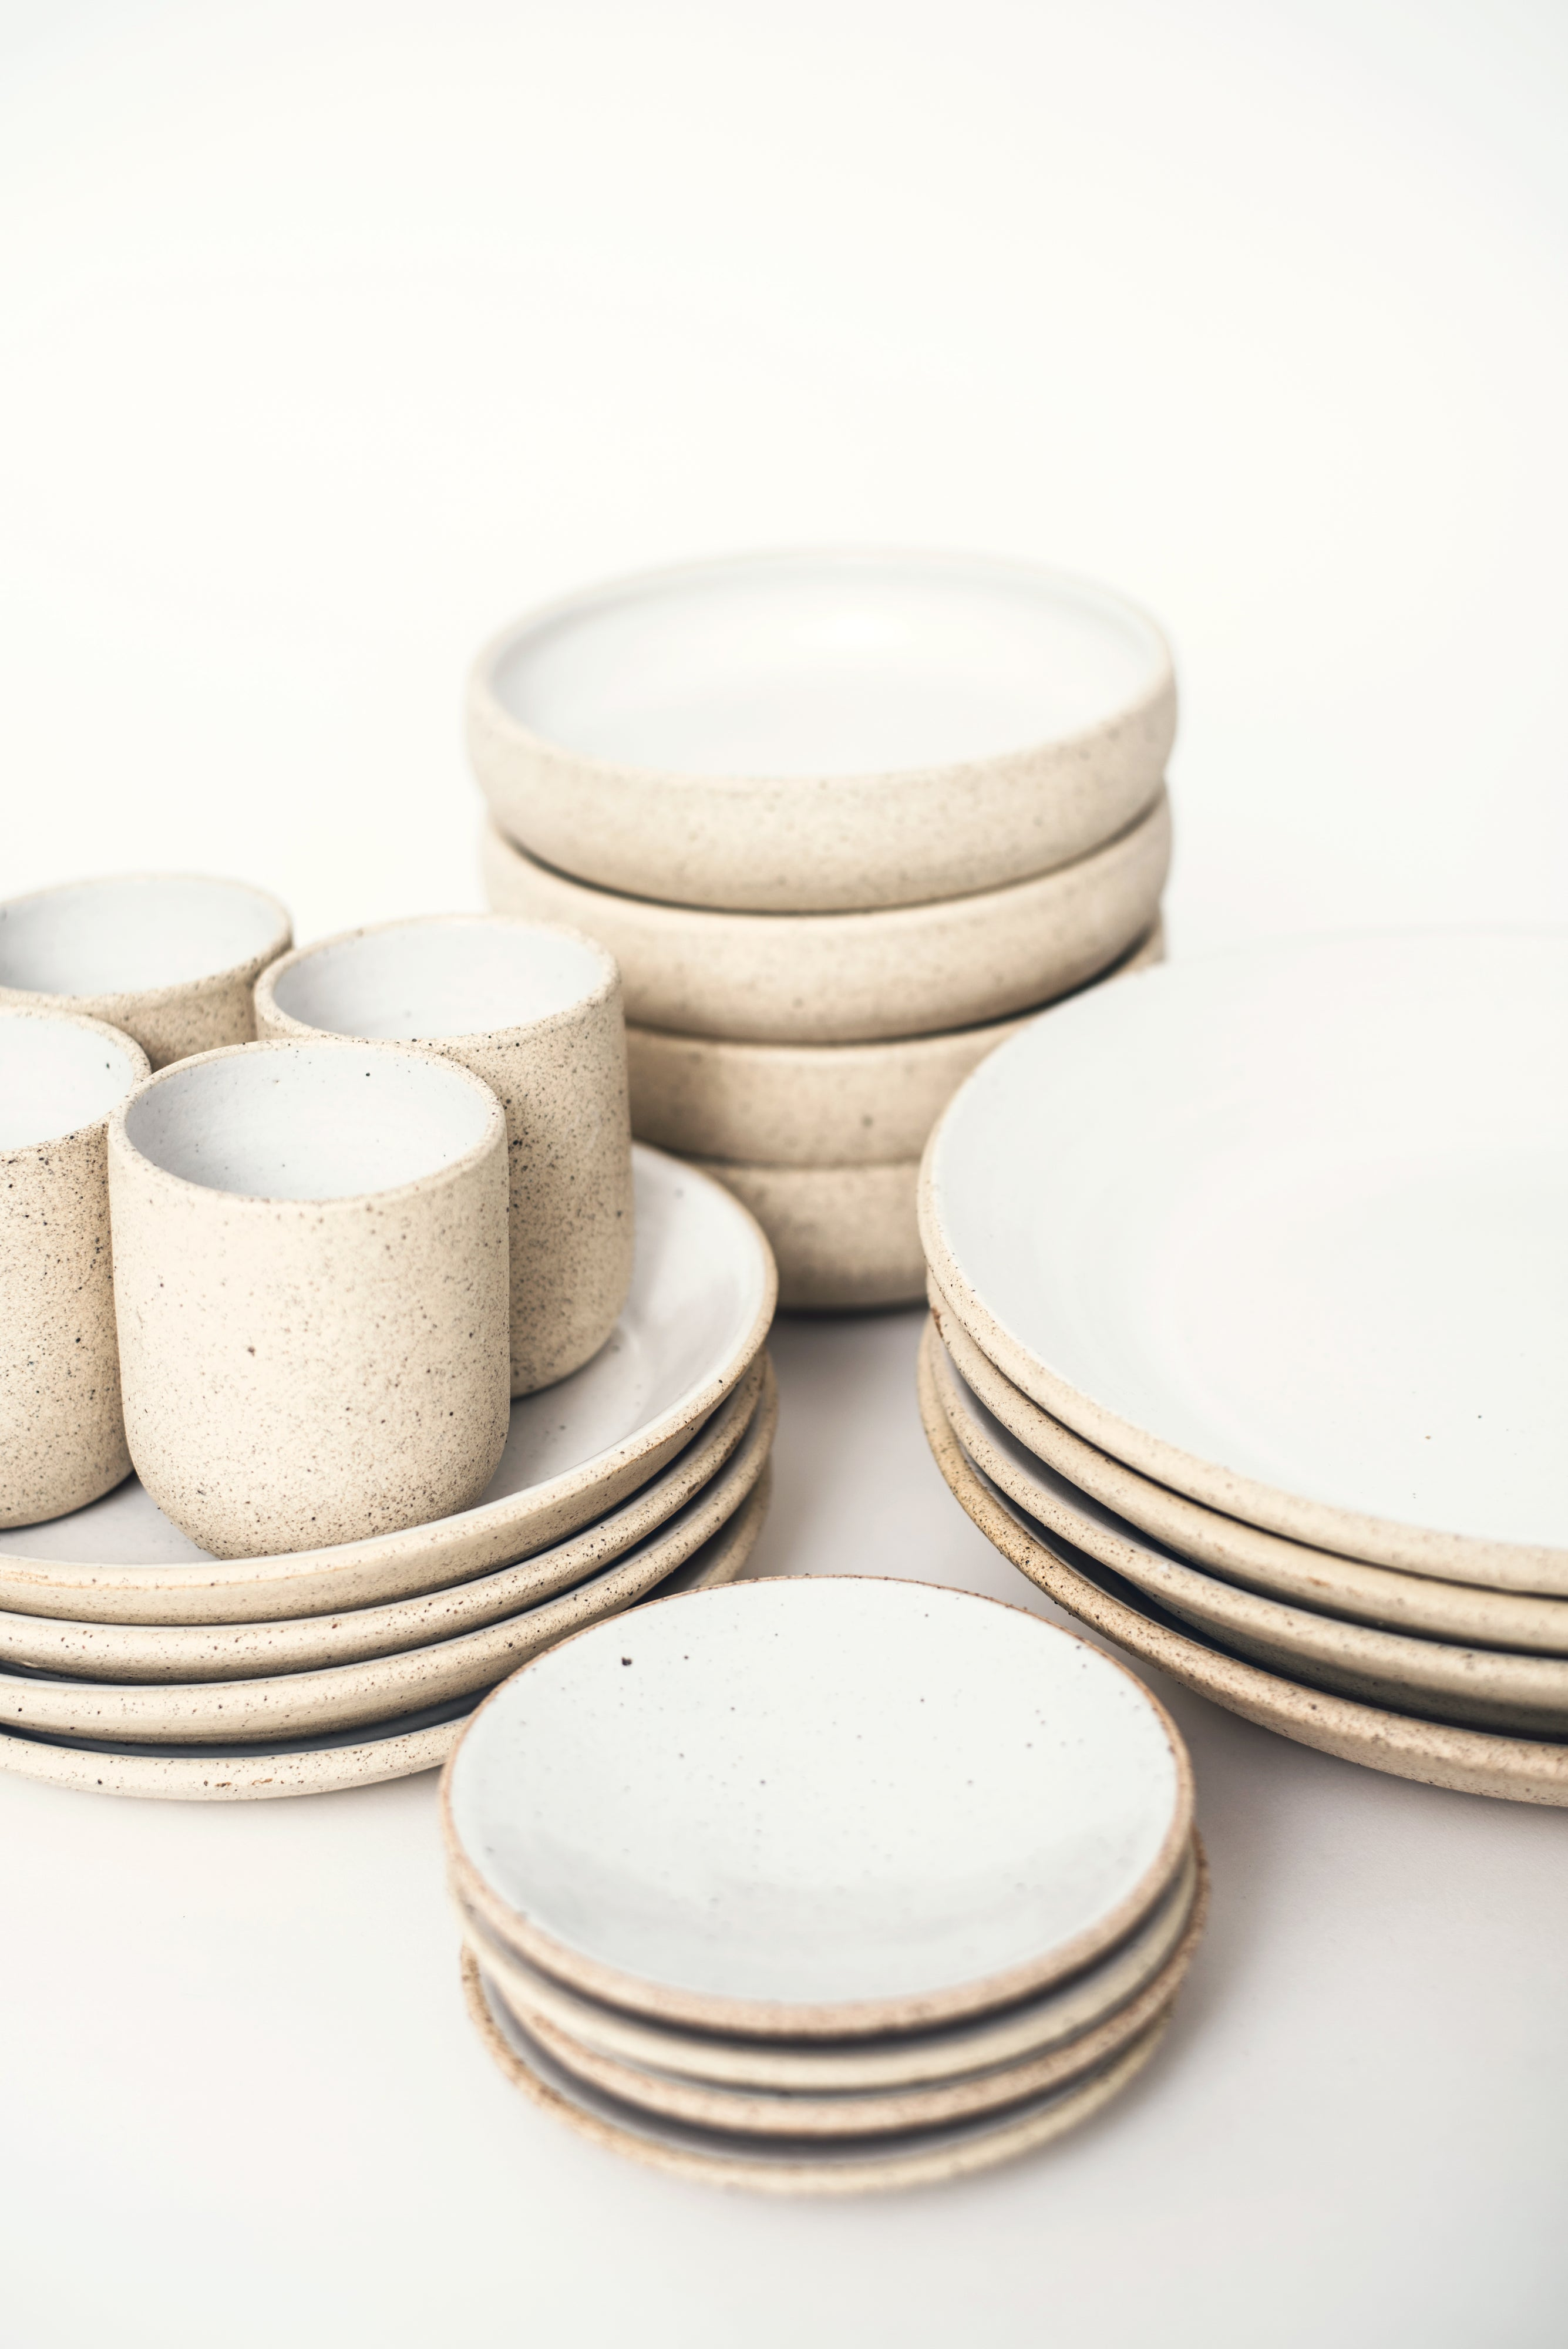 Handmade ceramic plates cups bowls ivory white organic texture